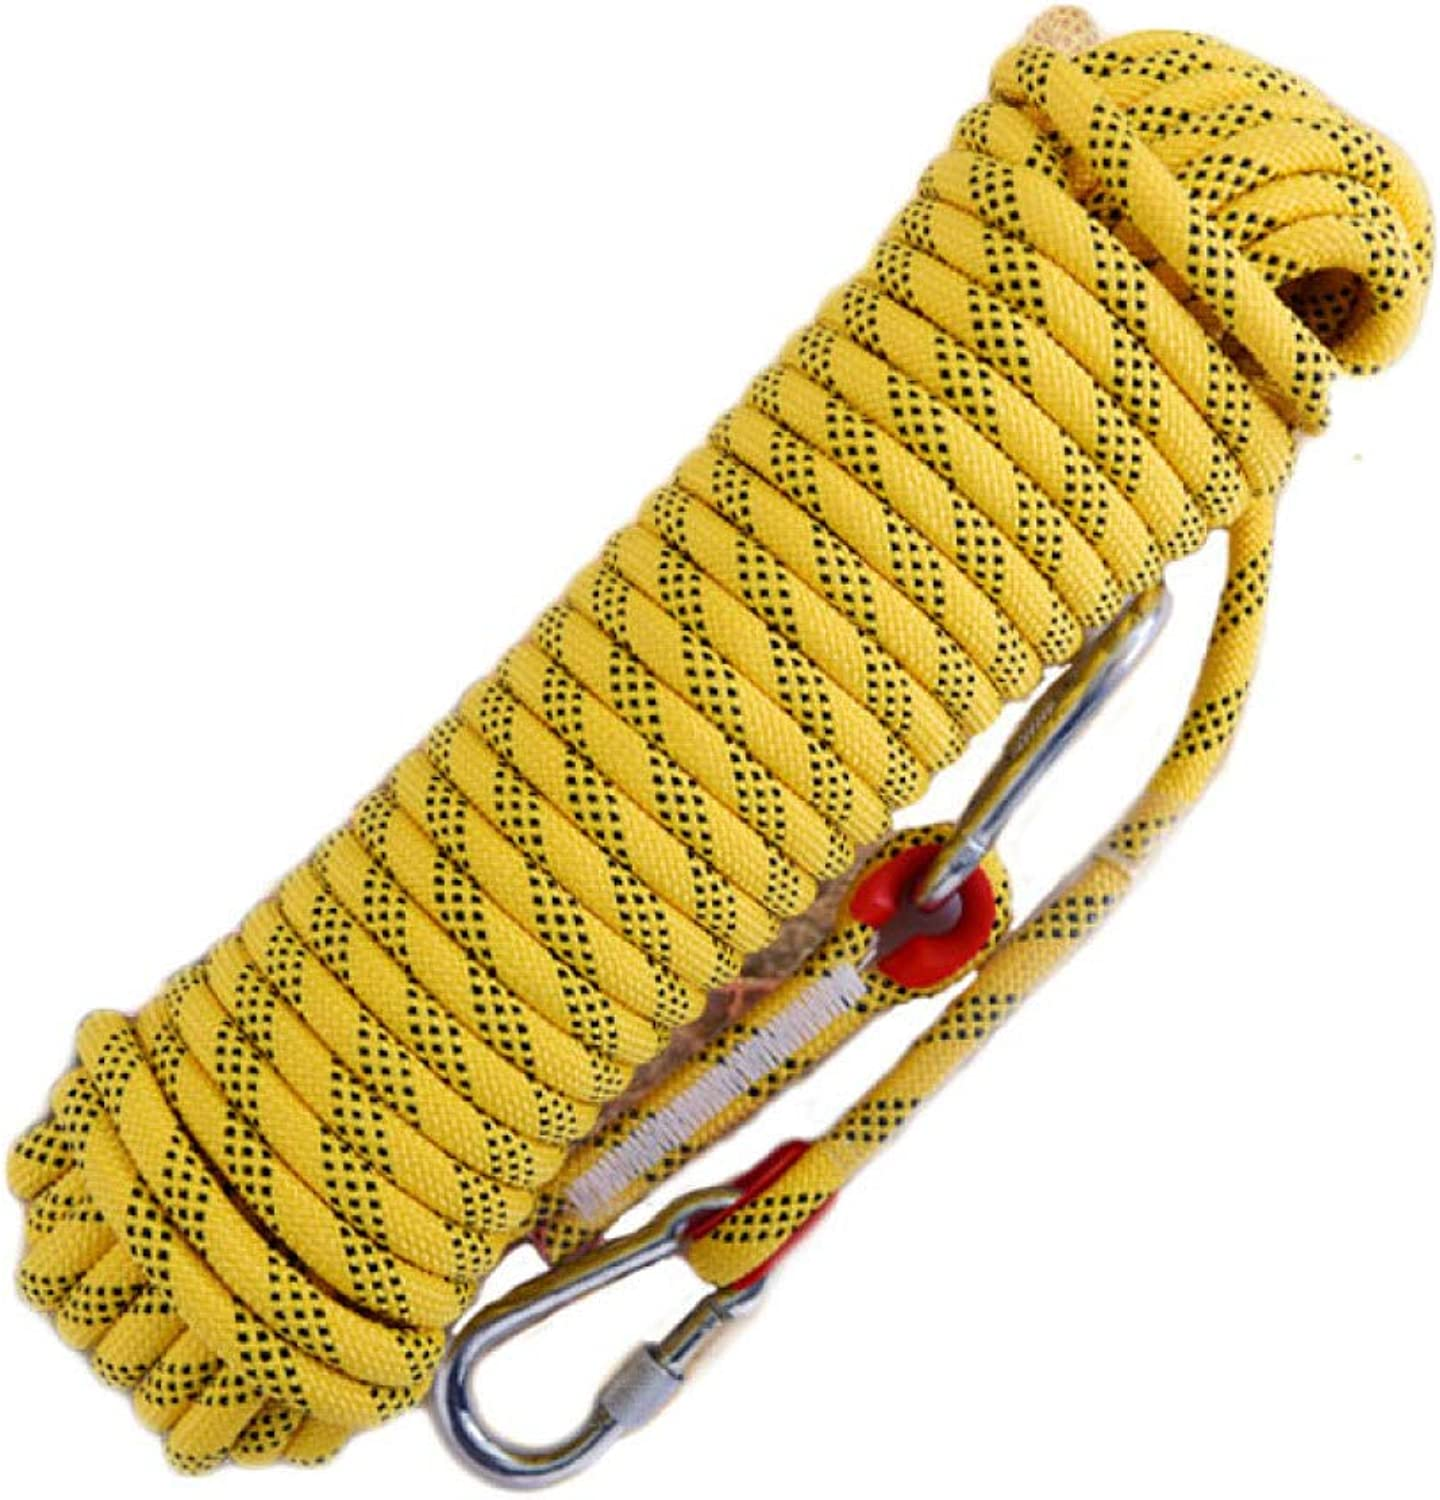 12 14 16MM Outdoor Mountaineering Camping Adventure Safety Rescue AntiSkid Rope,Yellow10m14mm